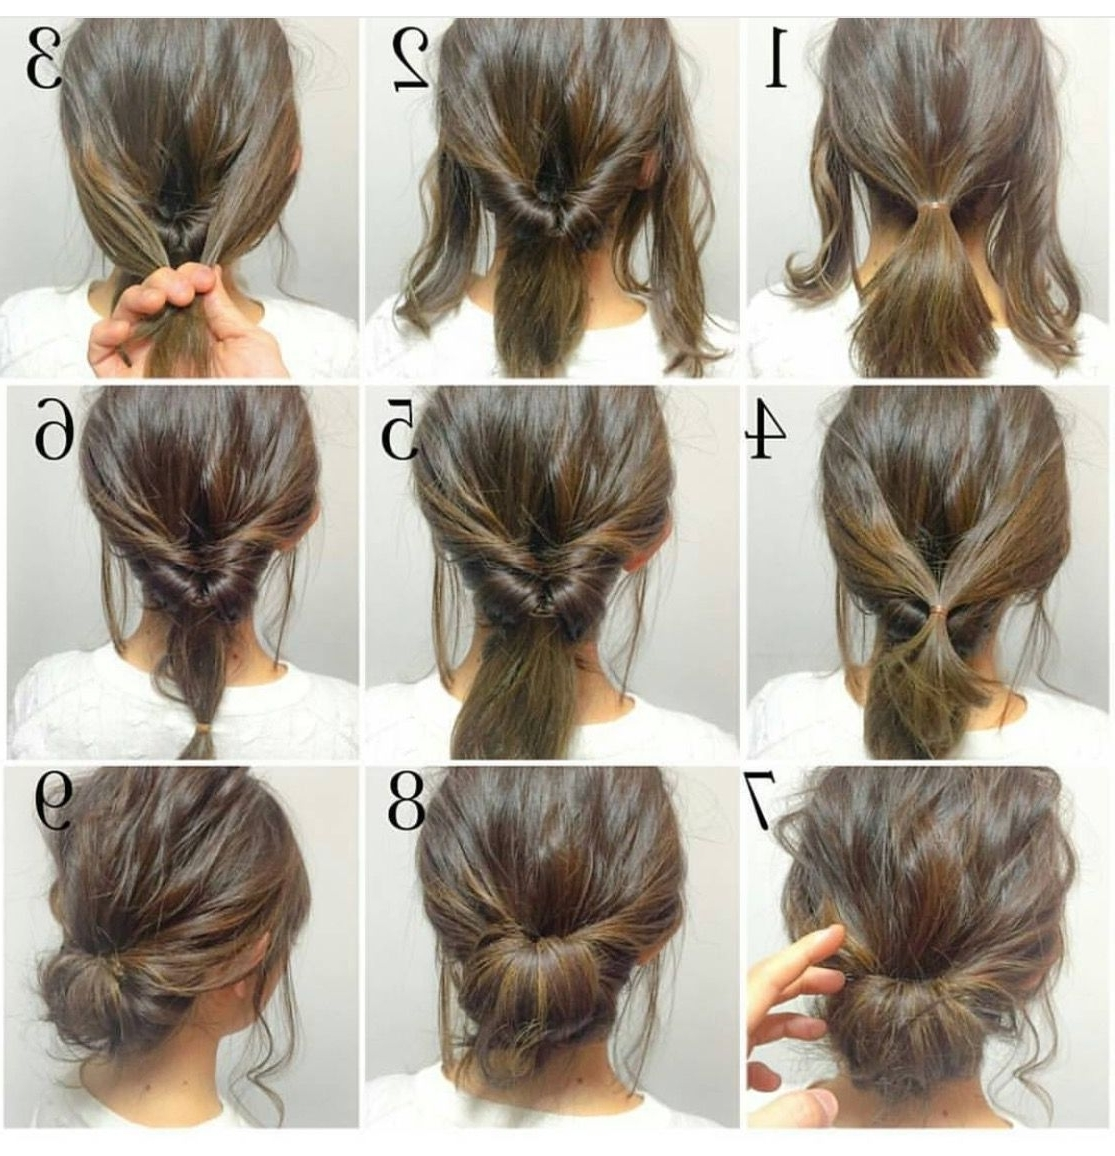 Easy, Hope This Works Out Quick Morning Hair! | • H A I R Pertaining To Easy Casual Updo Hairstyles For Thin Hair (View 9 of 15)